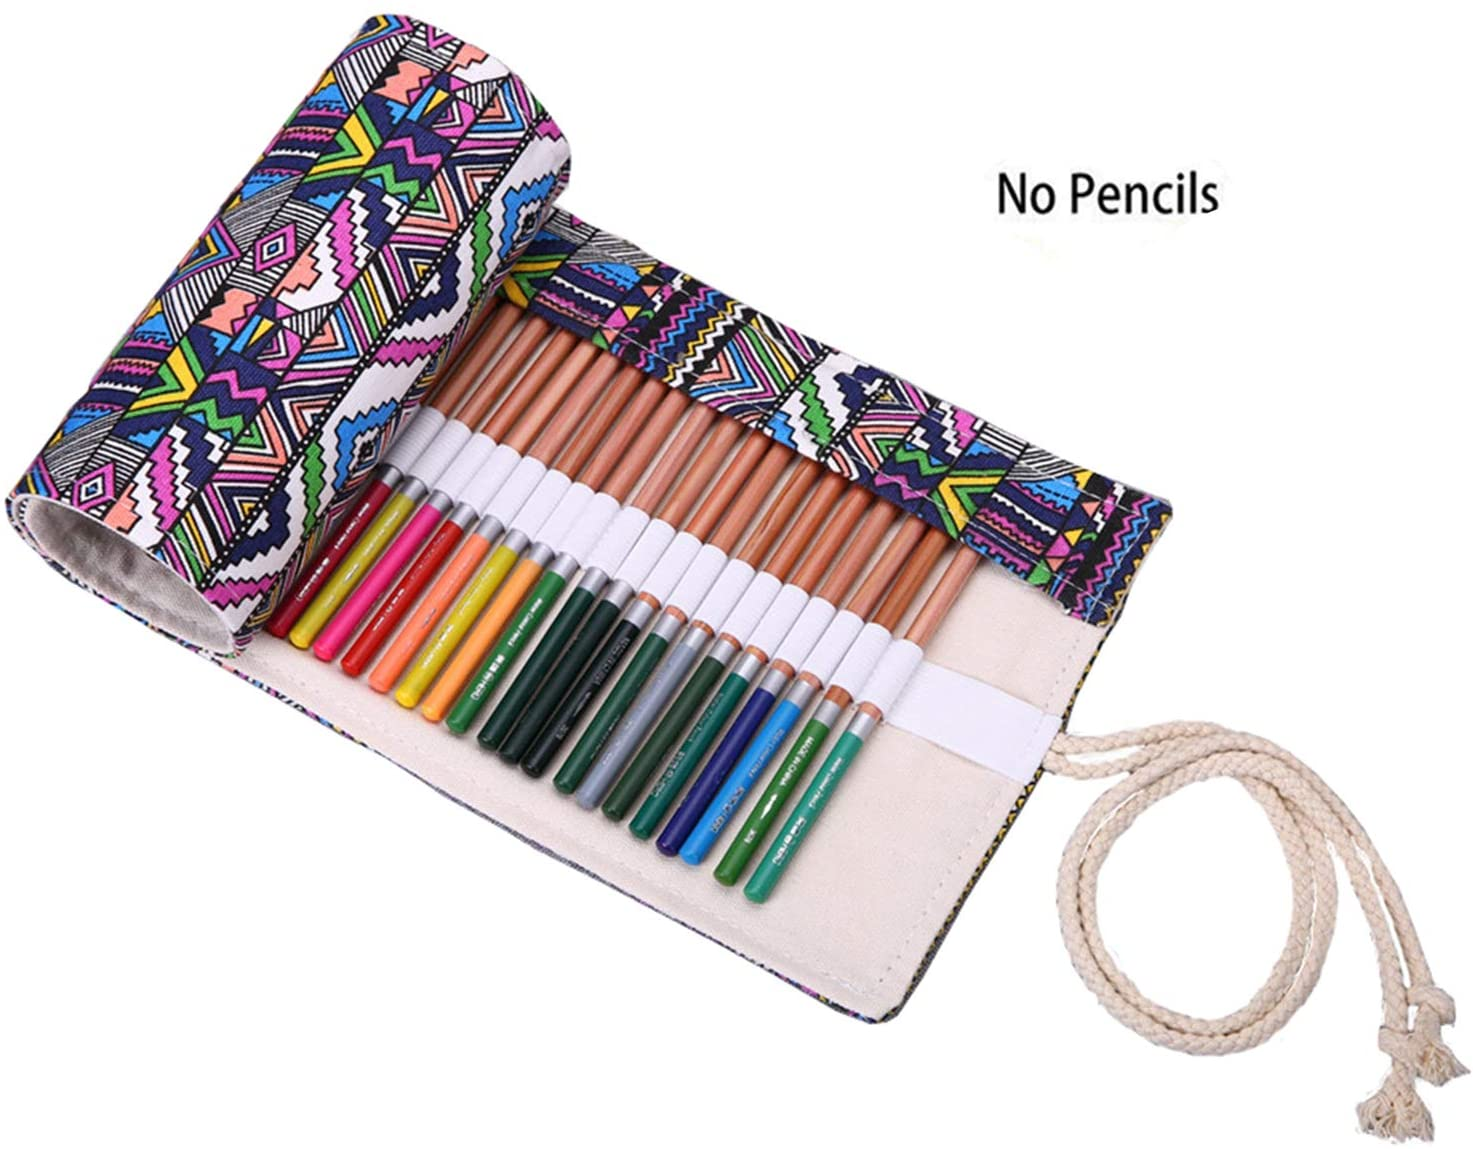 Kaariss Canvas Pencil Wrap, Travel Drawing Coloring Pencil Roll Organizer for Artist, Pencils Pouch Case Hold for 72 Colored Pencils (Pencils are NOT Included) Bohemian 72